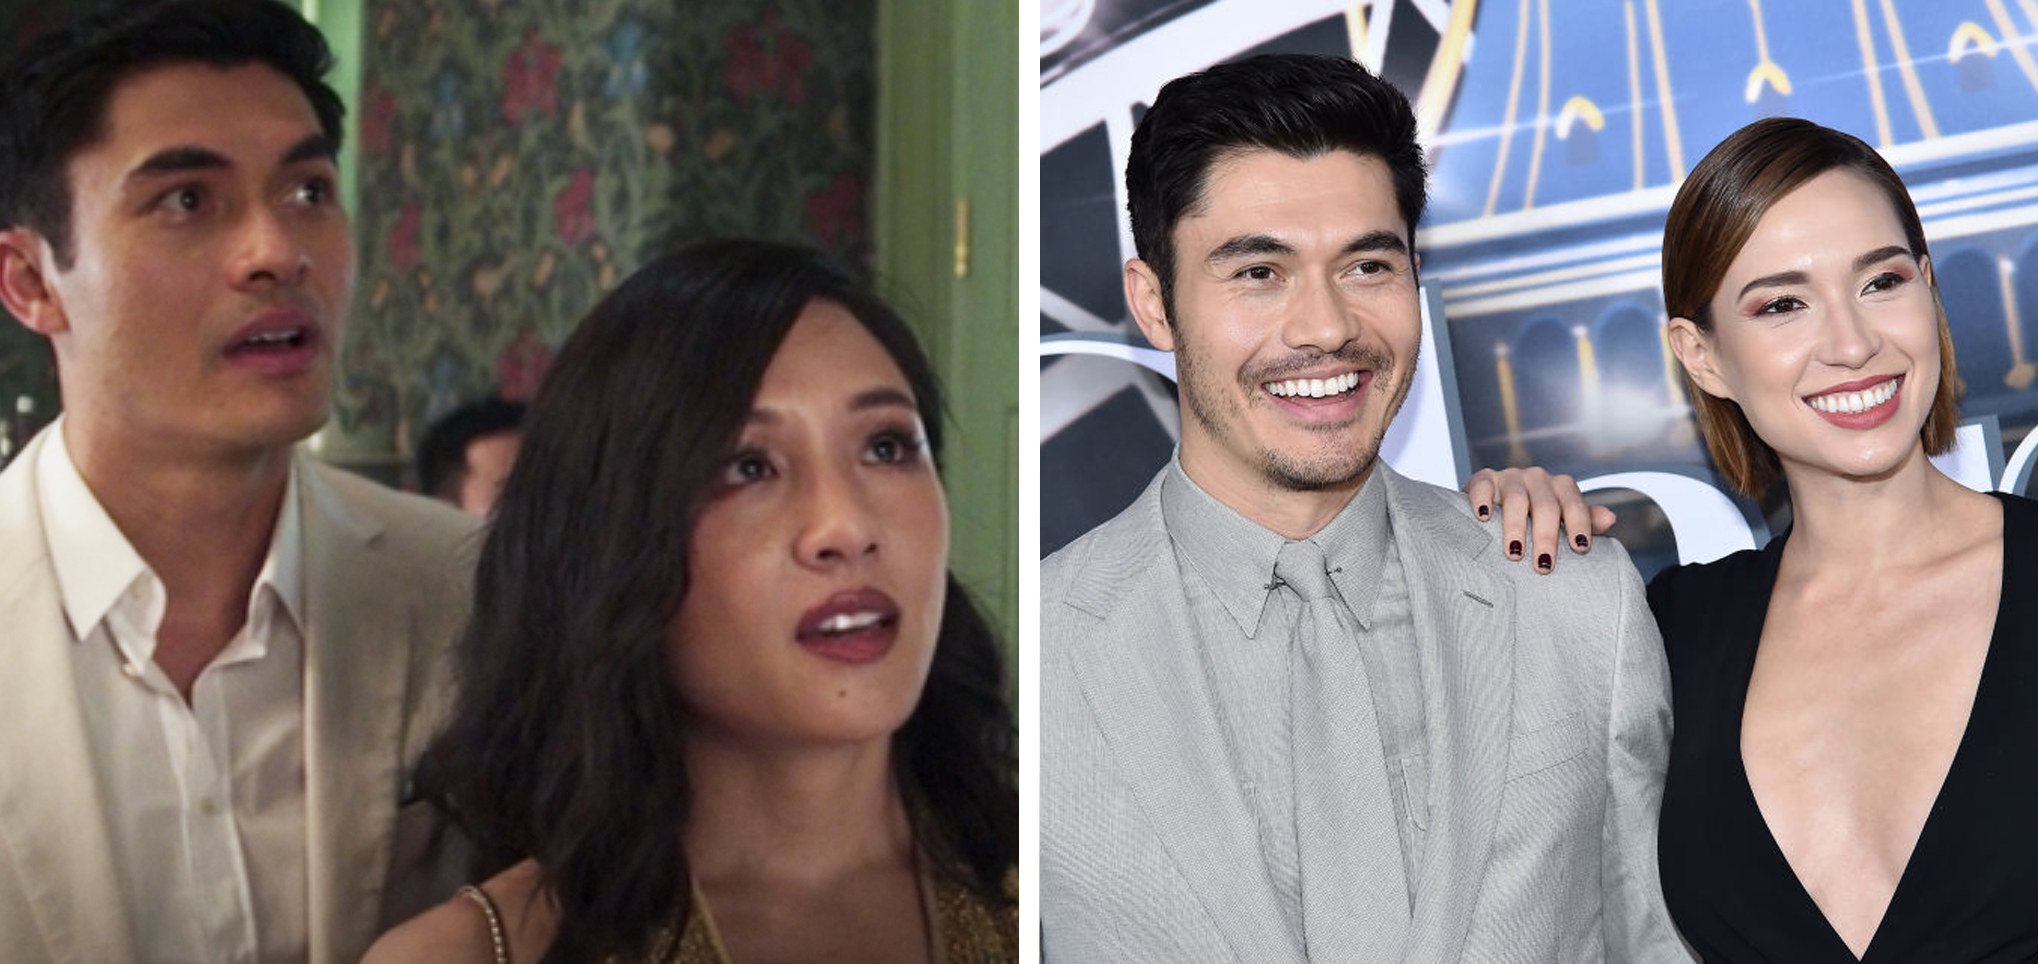 On the left, Golding is in character with co-star Constance Wu at the mansion. On the right, he is with his wife at a premiere.